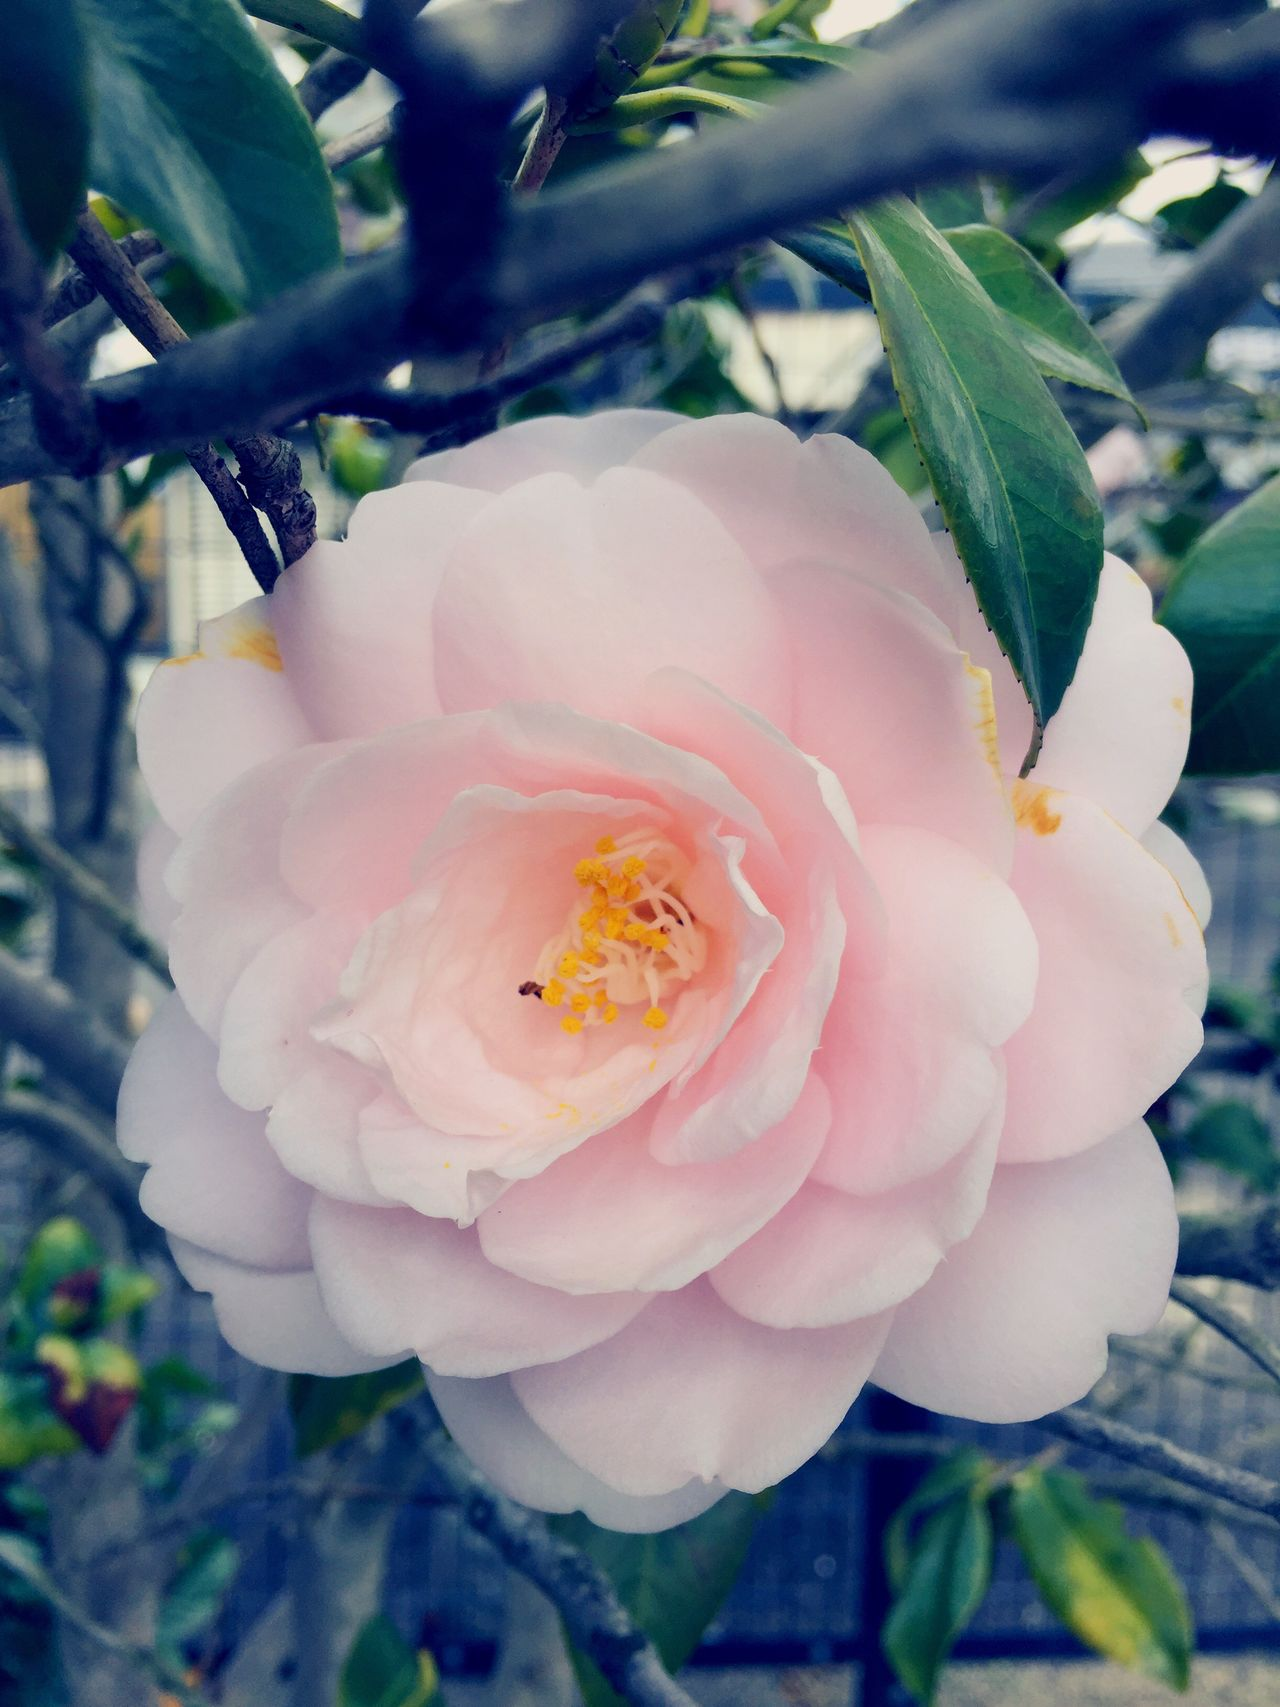 Flower Outdoors Camellia Pink Color